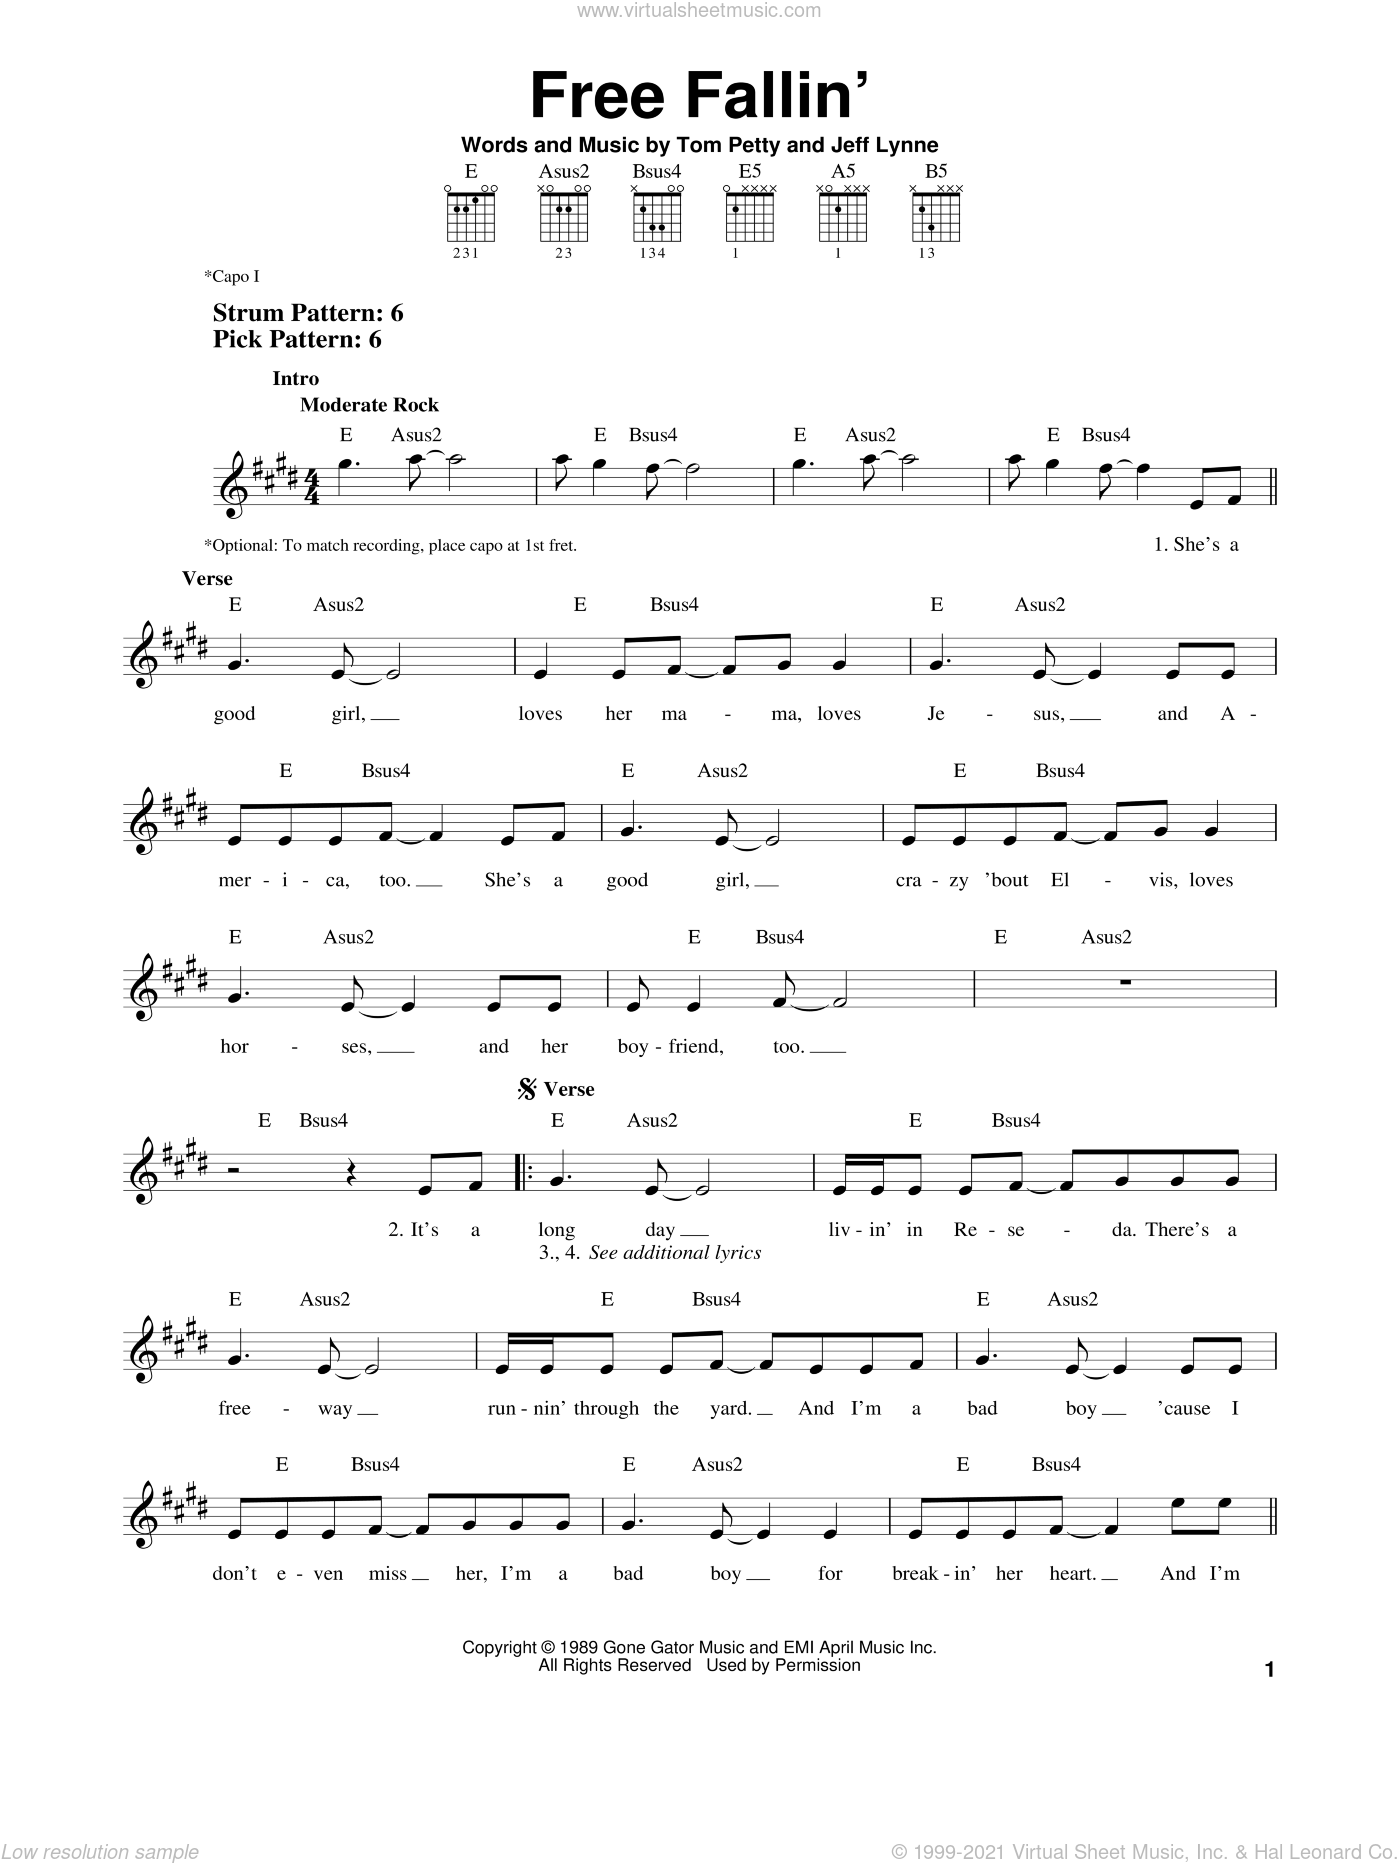 Free Fallin' sheet music for guitar solo (chords) by Jeff Lynne